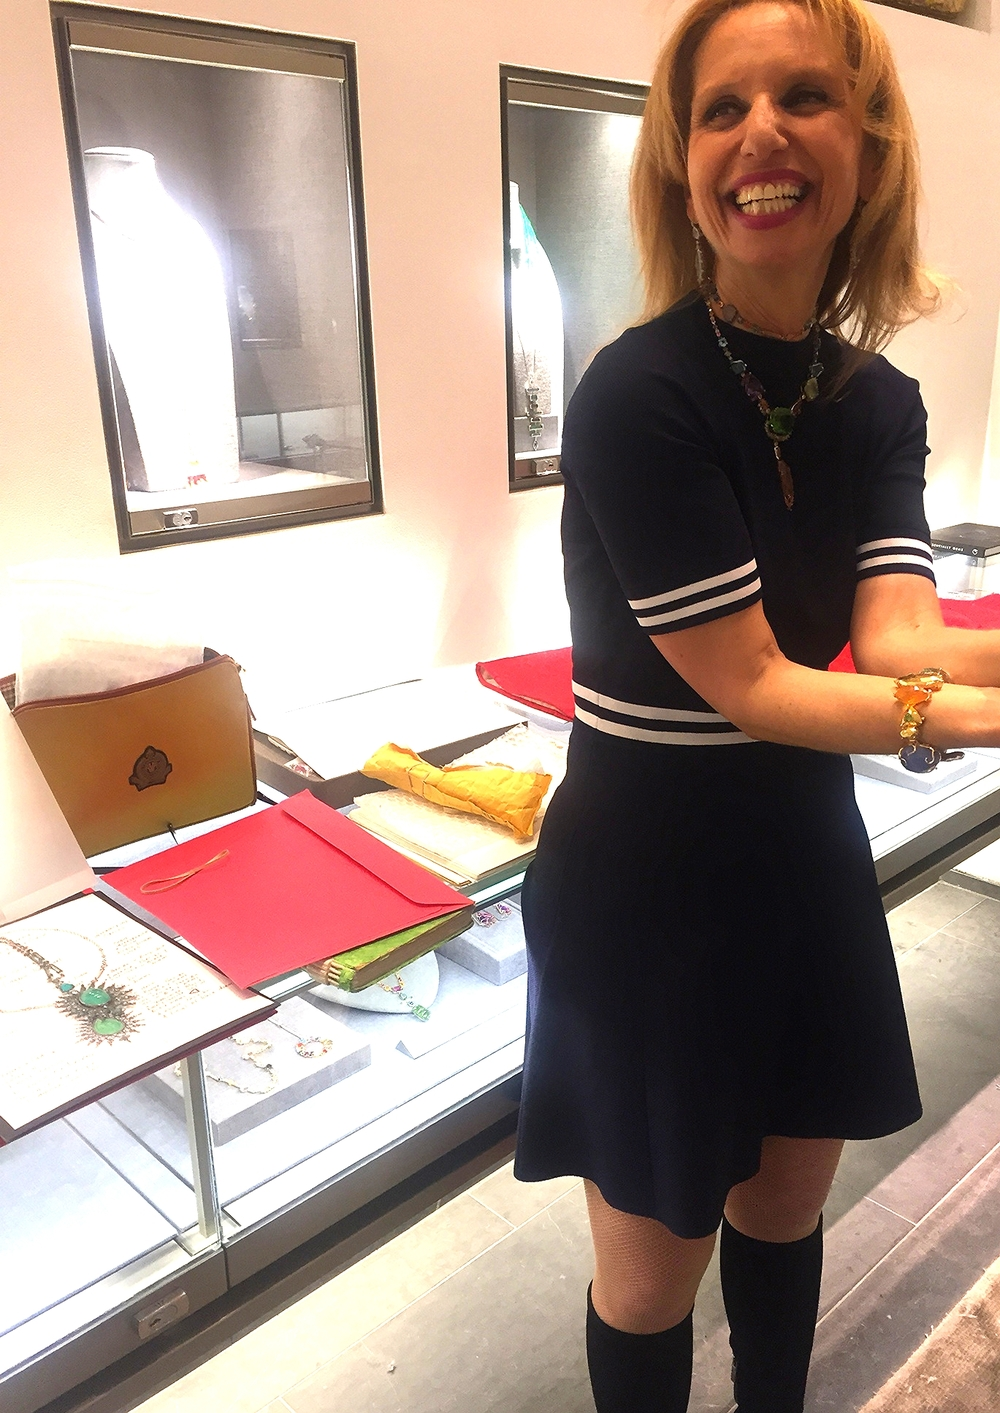 Sharon Khazaam enjoying Meaghan'sadoration of her beautiful jewels at Barneys, during her trunk show.